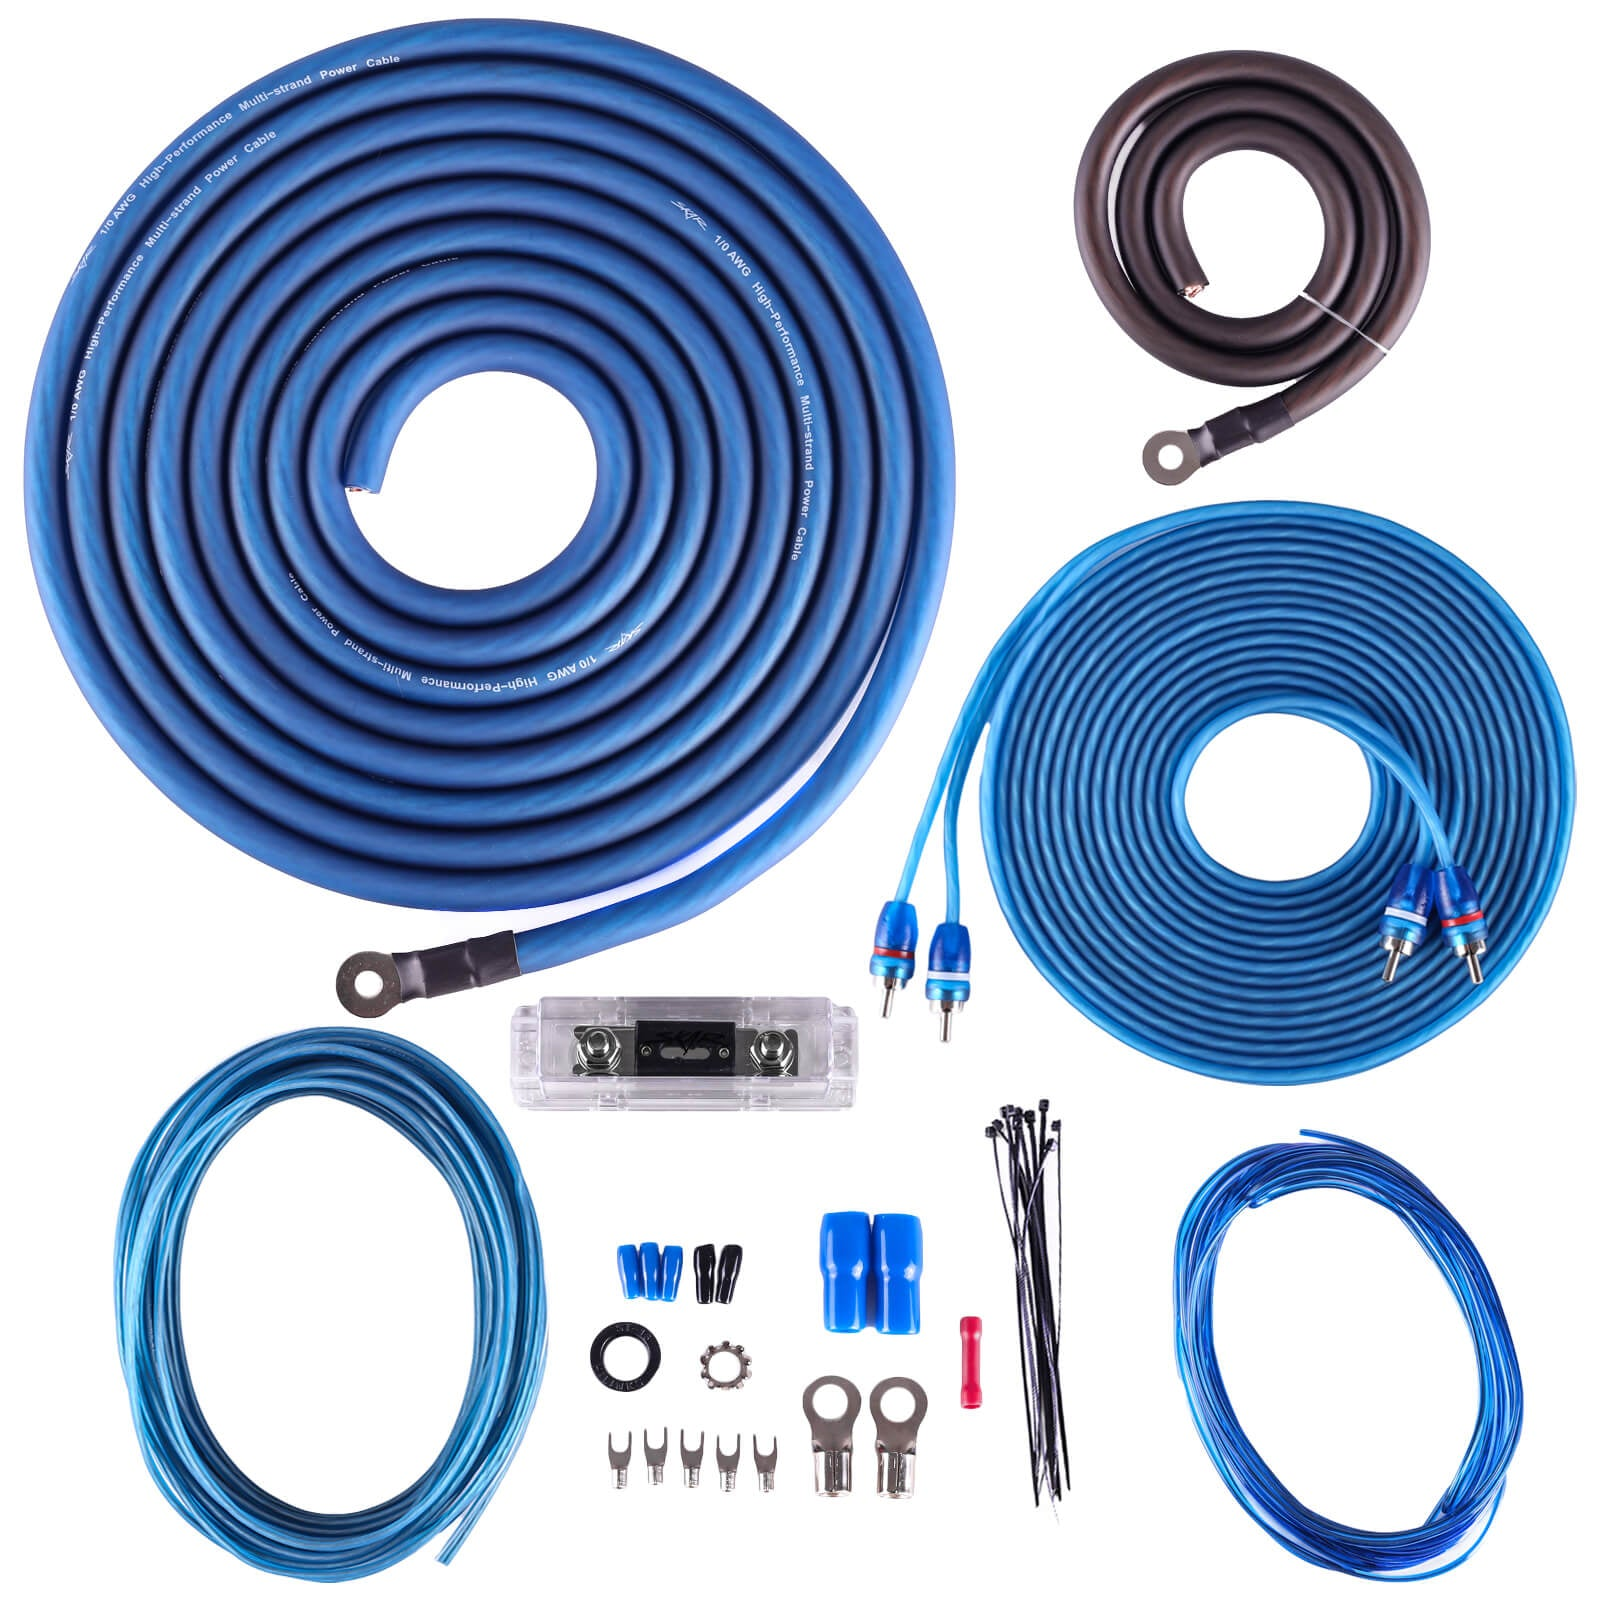 Skar Audio SKAR0ANL-CCA 1/0 Gauge CCA 2,000 Watt Complete Amplifier Installation Wiring Kit - Main Image